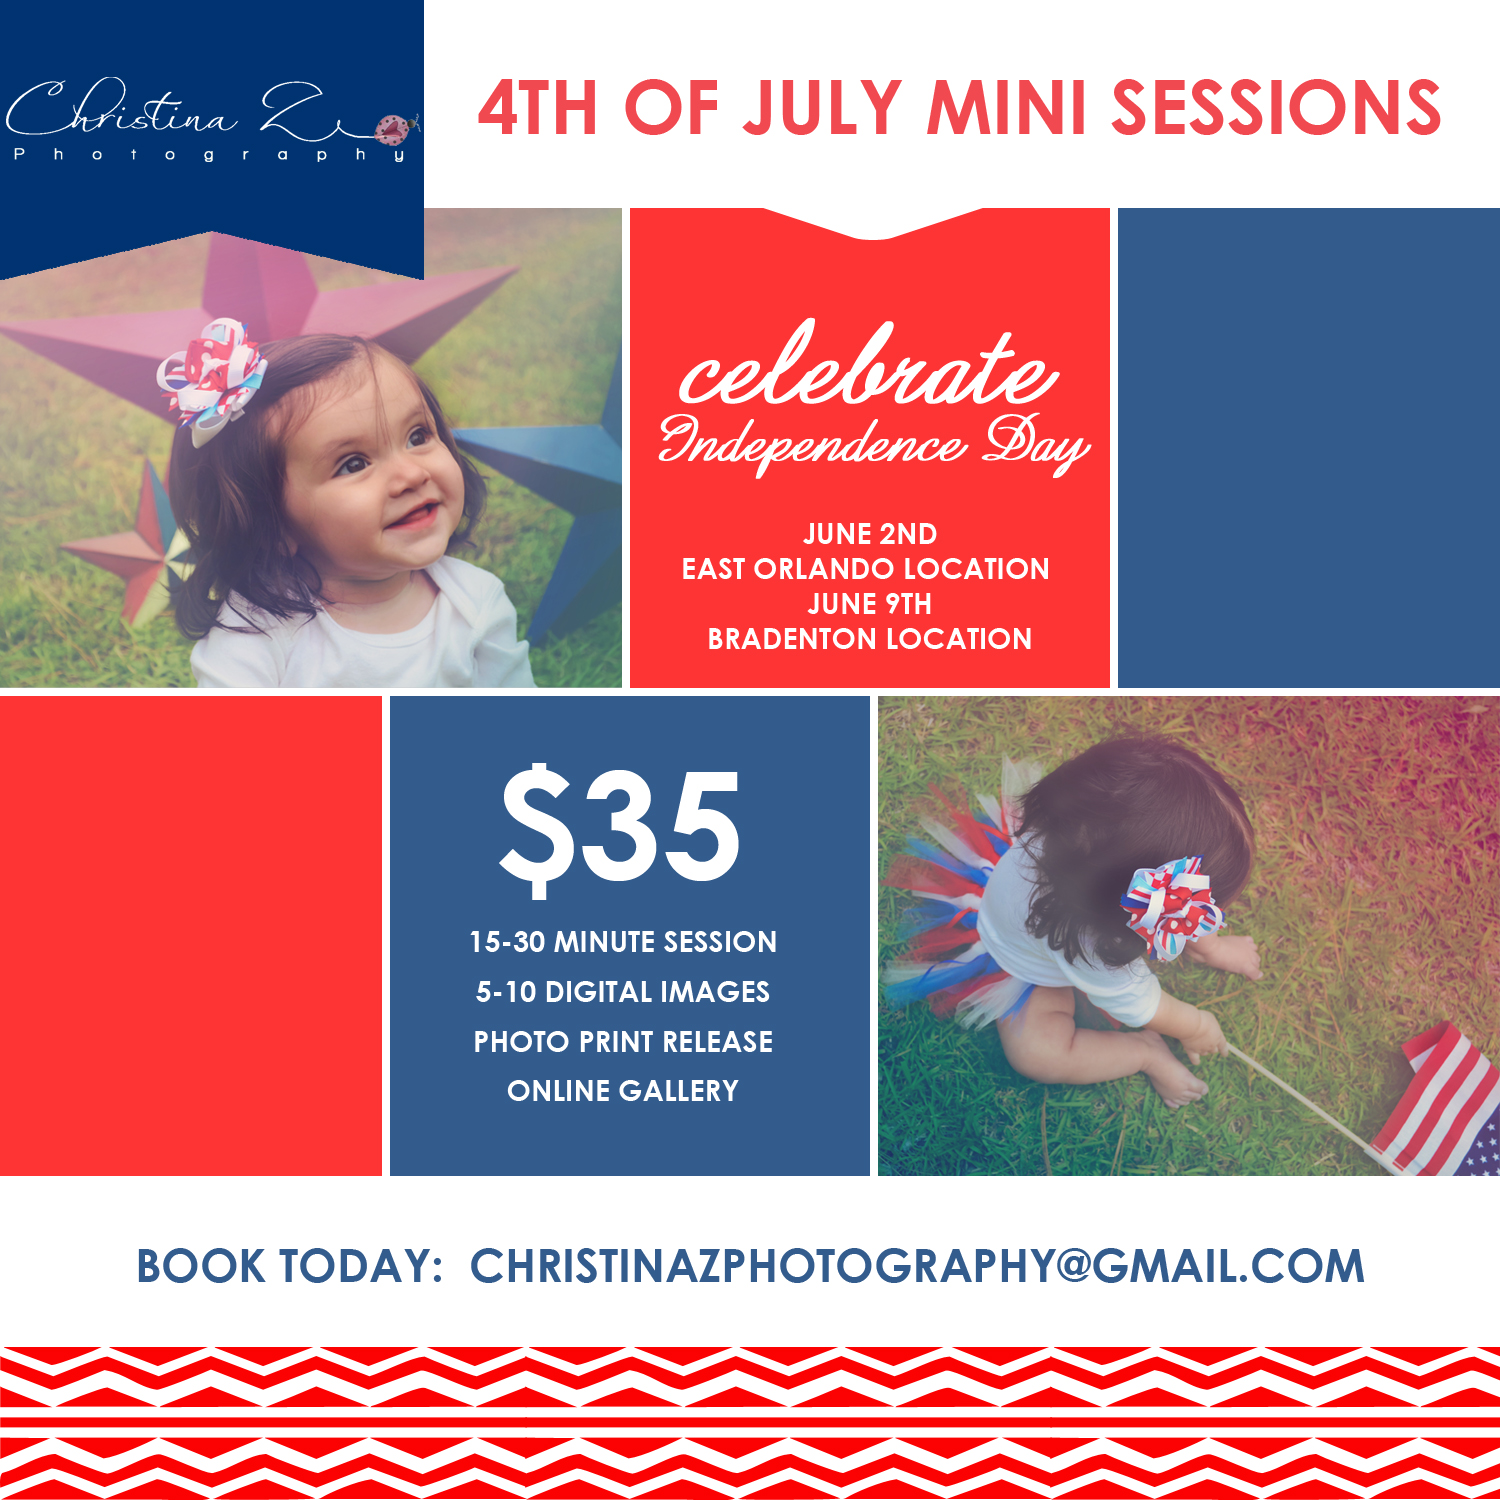 4th of July Mini Session Event  | Christina Z Photography